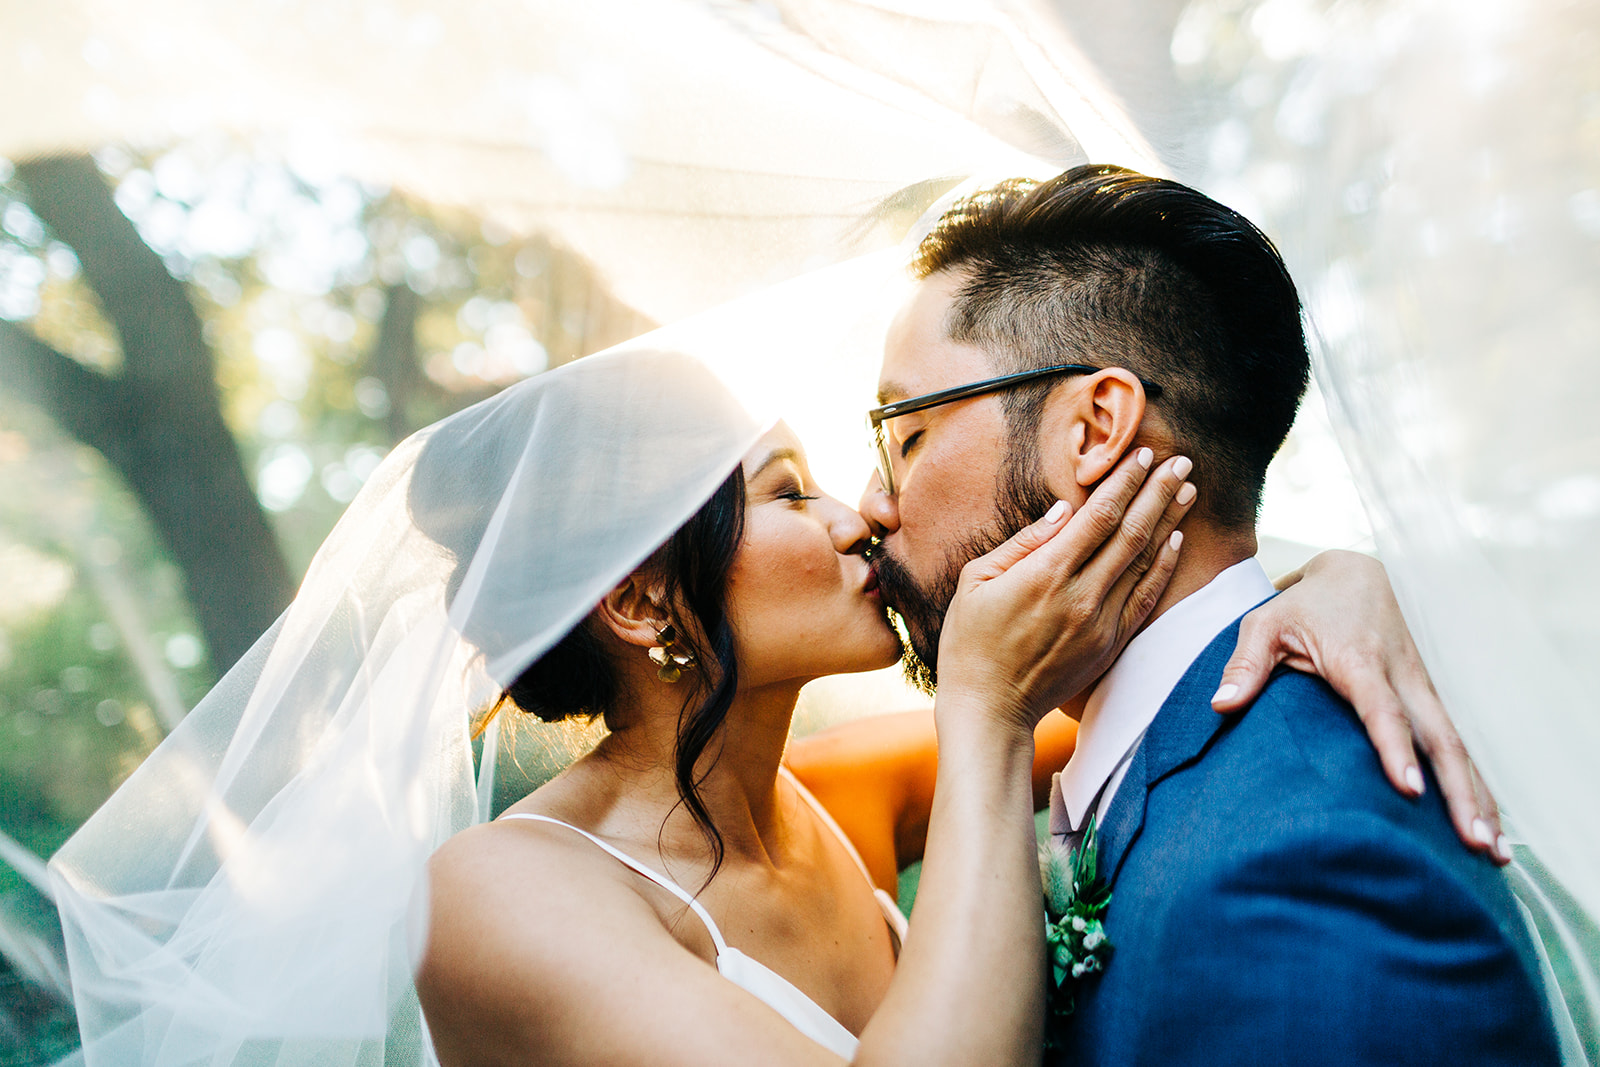 Los-Altos-History-Museum-Wedding_Orange-County-Wedding-Photographer_Clarisse-Rae-Photo-Video_87